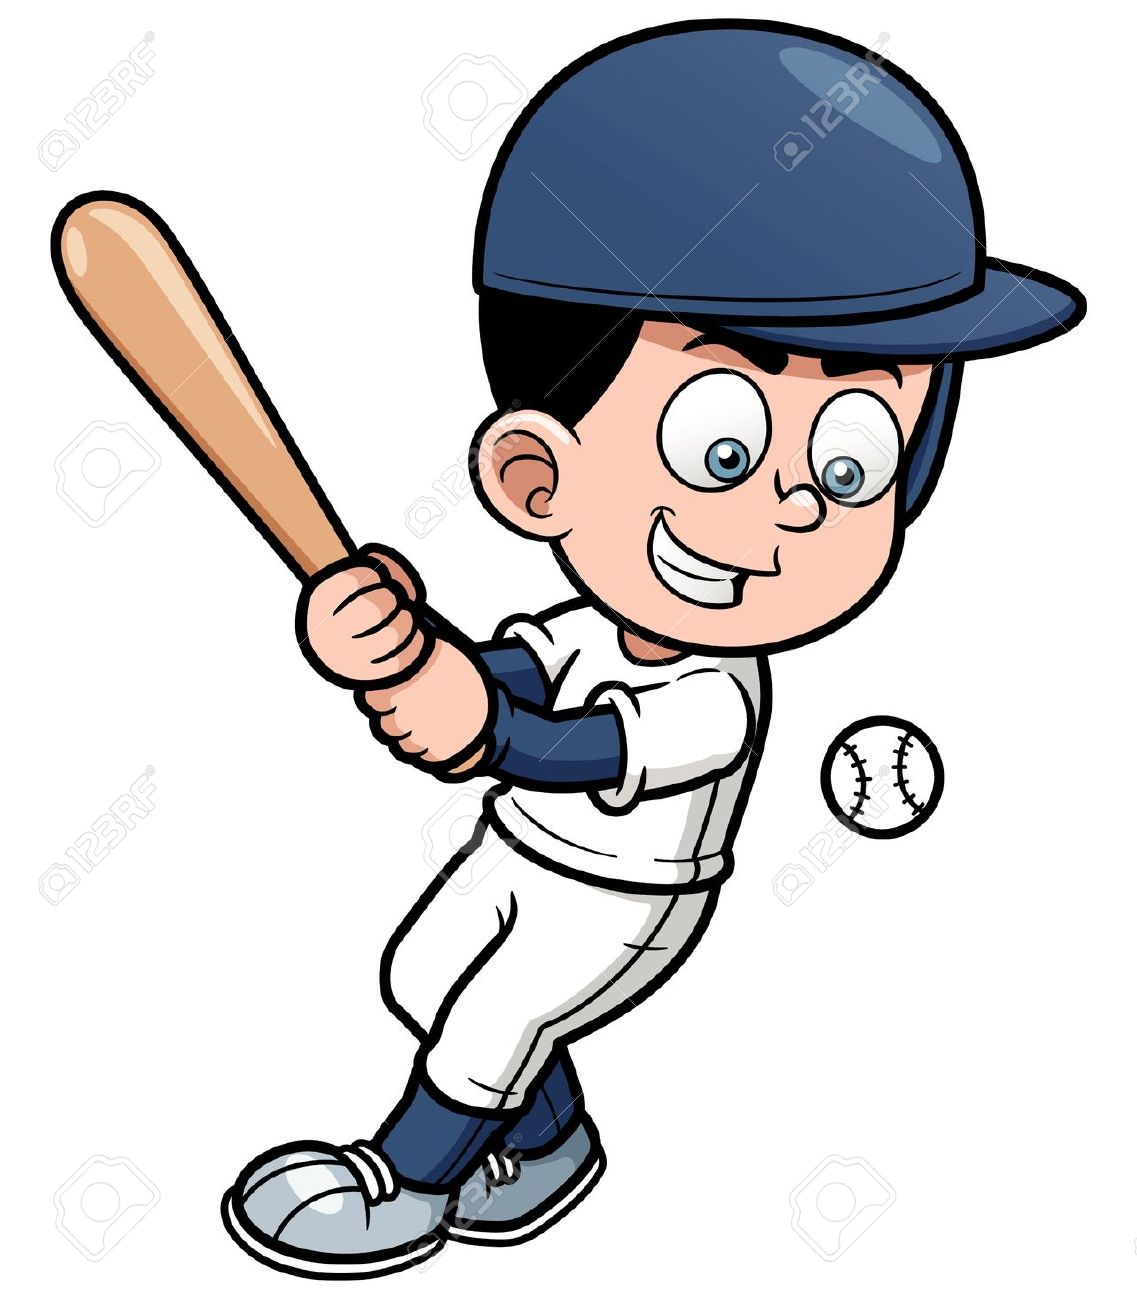 1137x1300 Baseball Clipart, Suggestions For Baseball Clipart, Download